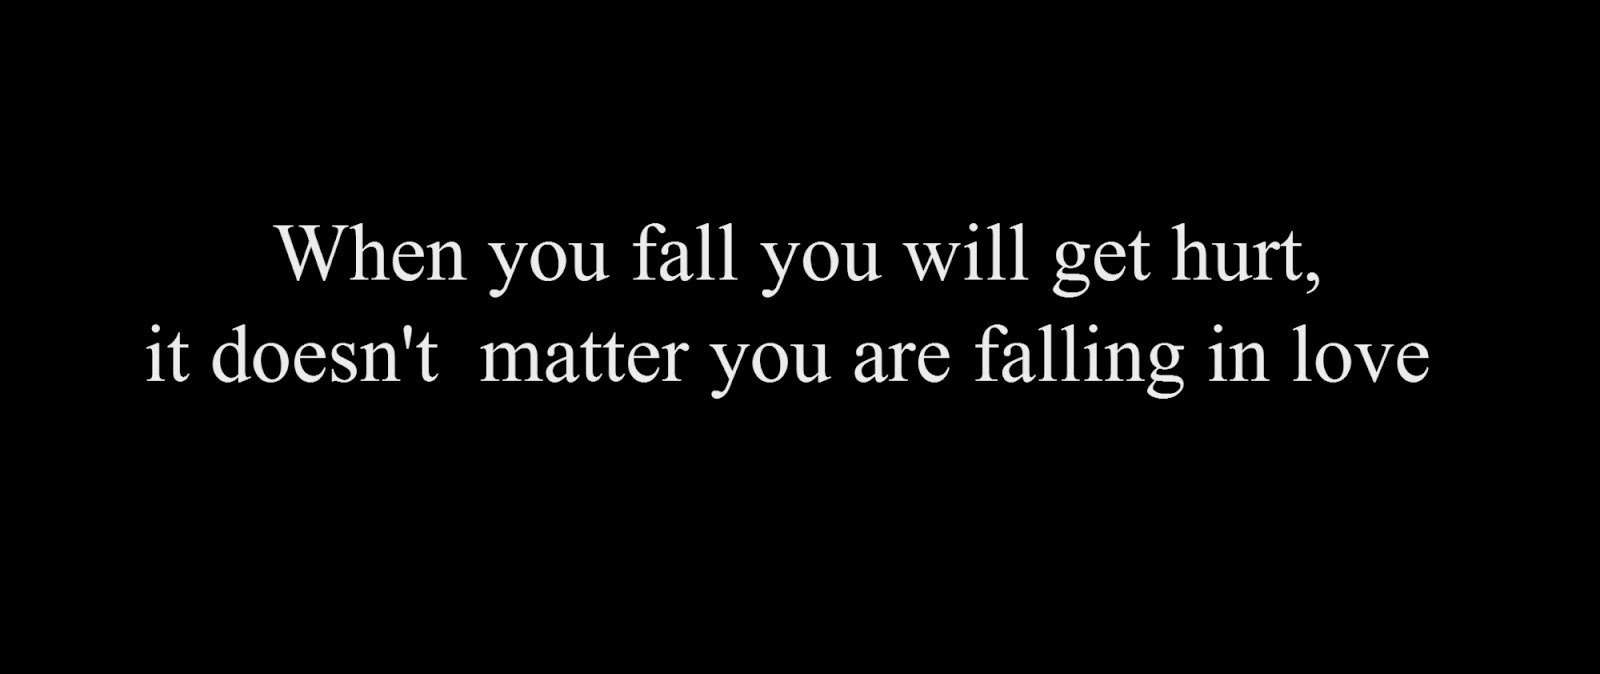 When you fall you will get hurt, it doesn't  matter you are falling in love